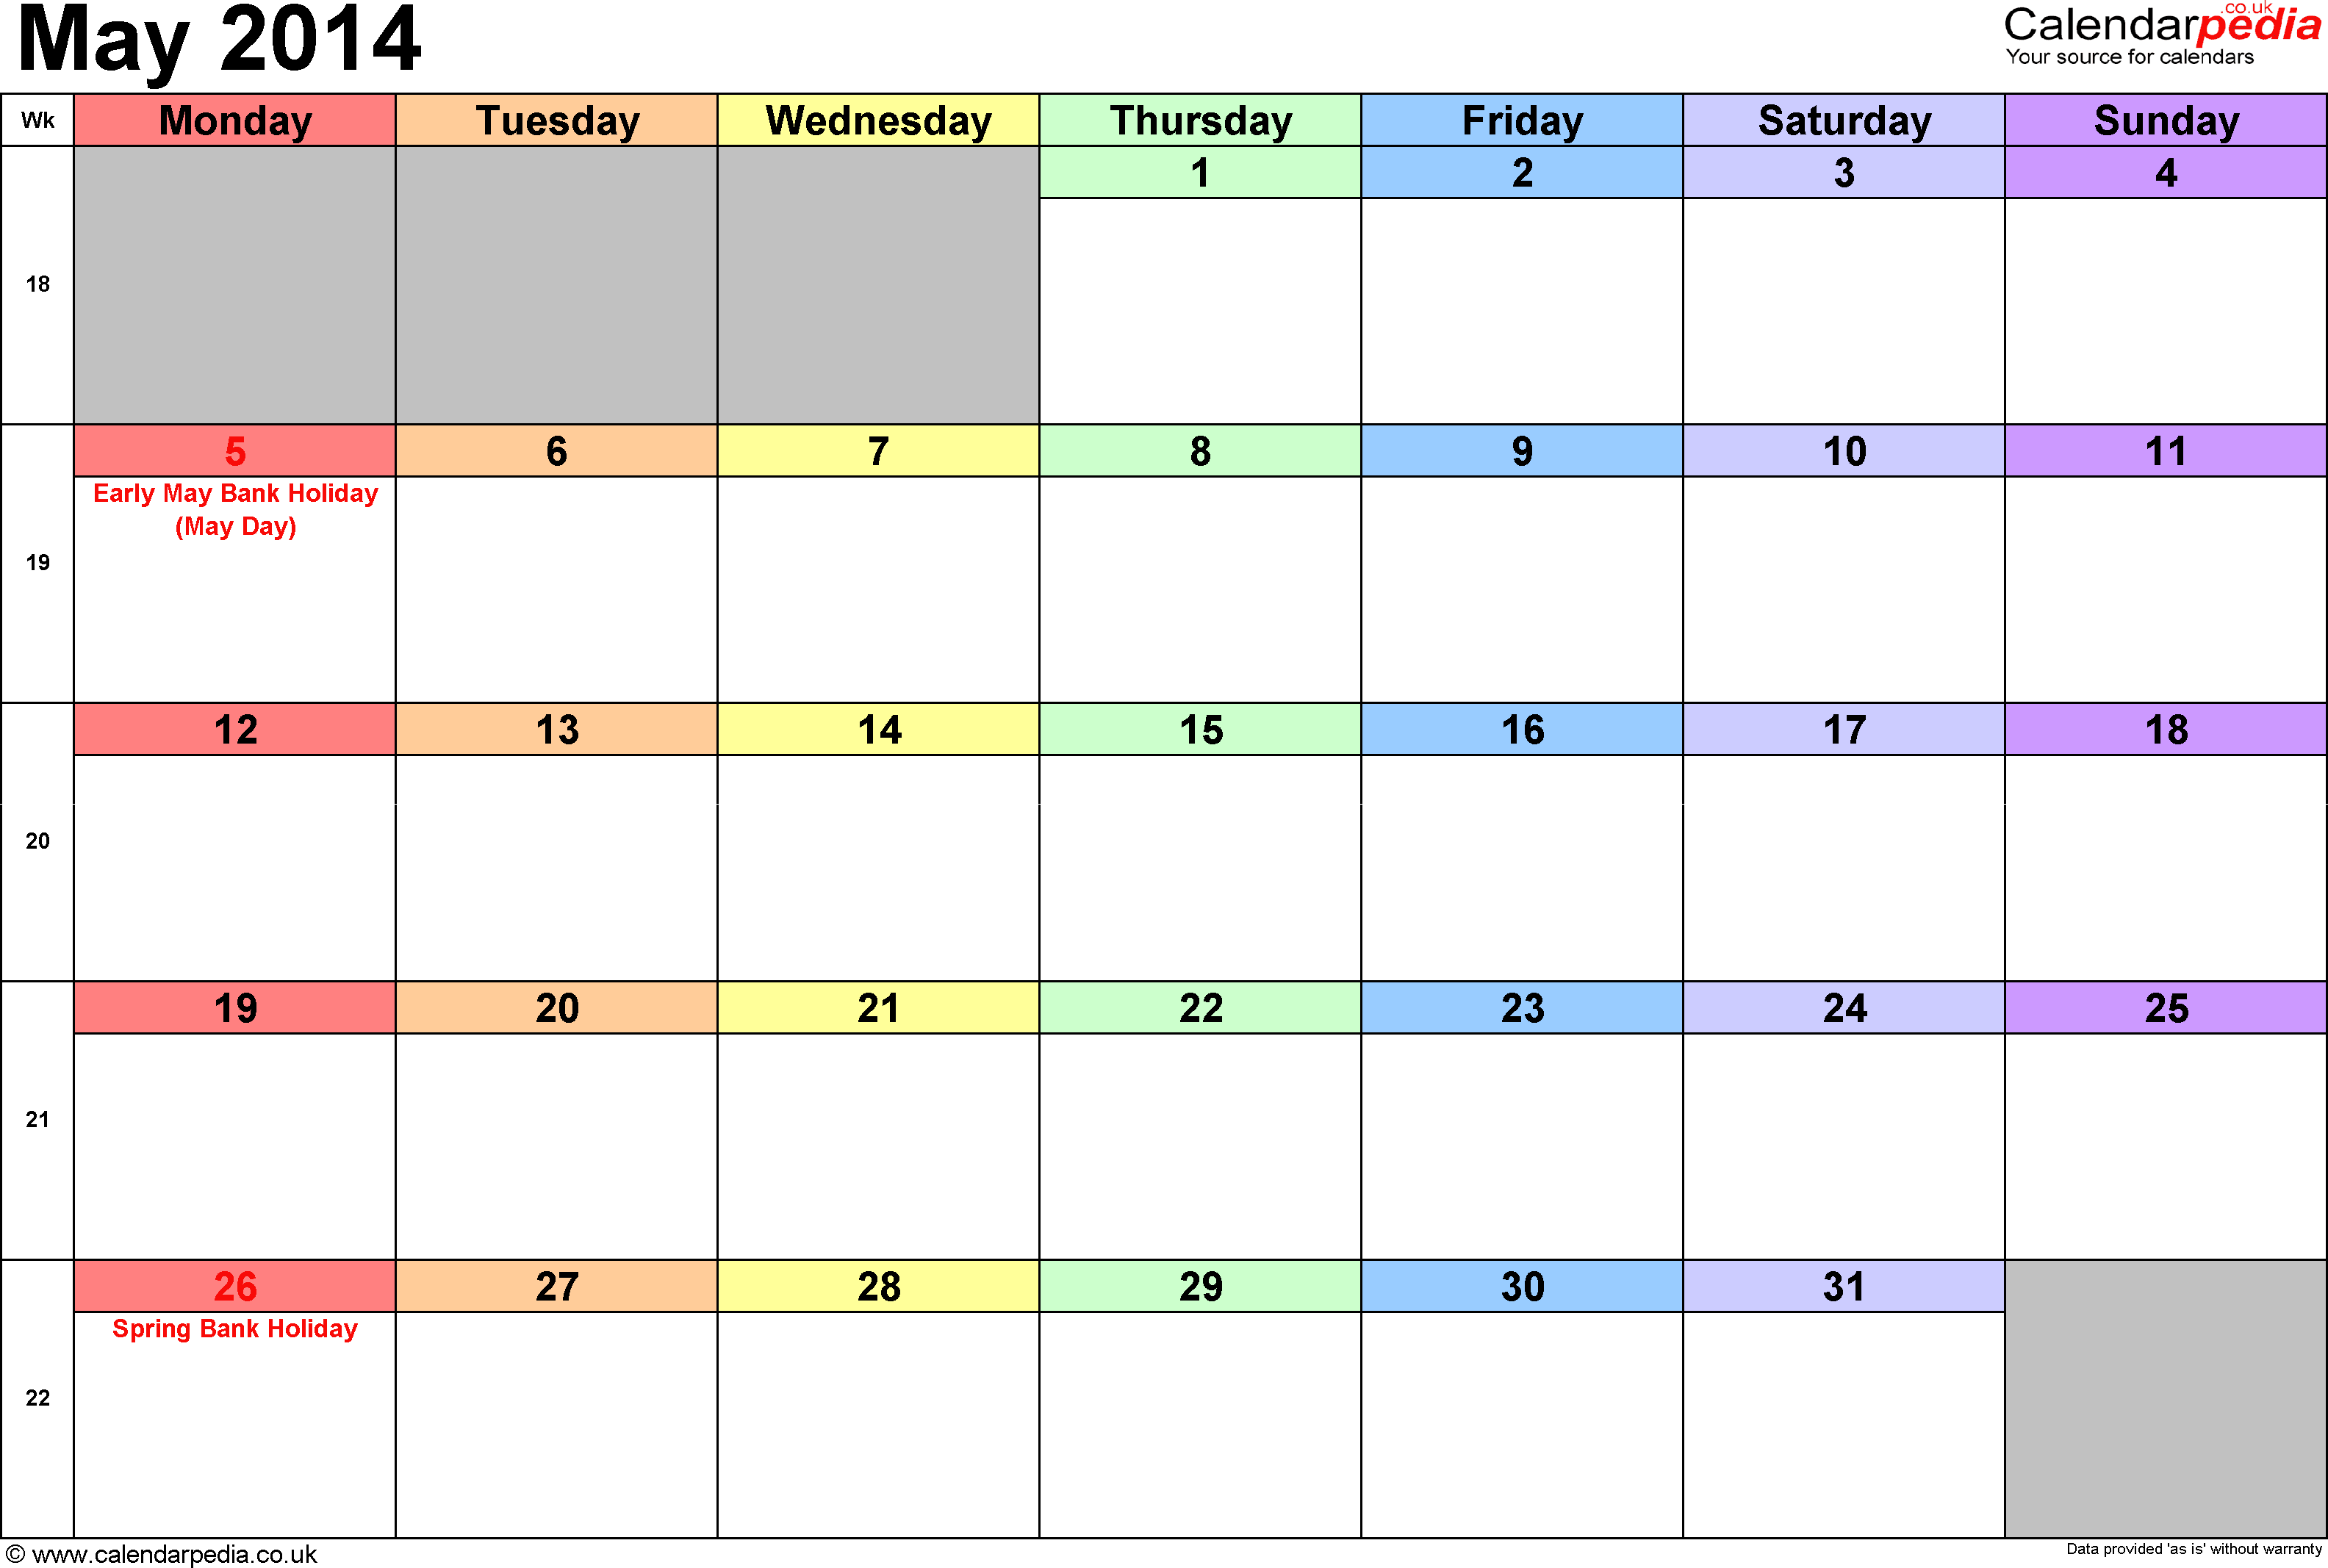 Calendar May 2014, landscape orientation, 1 page, with UK bank